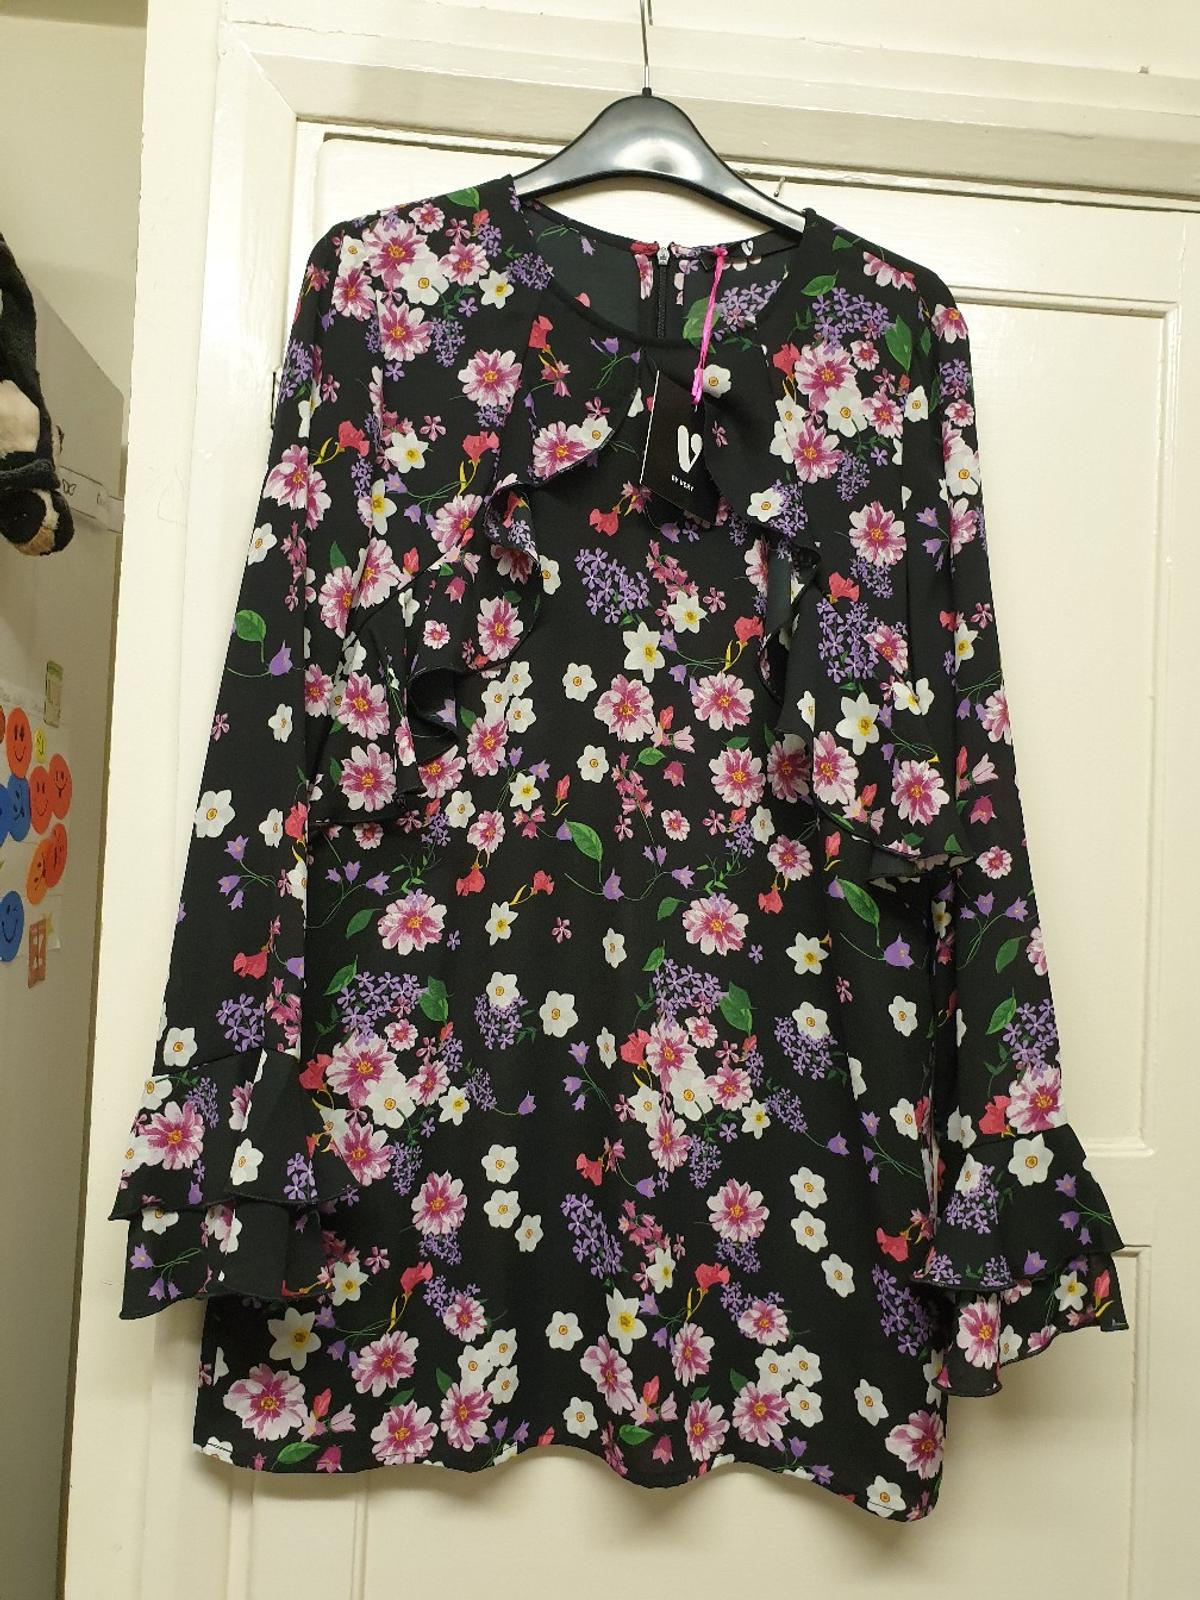 NWT ladies V by Very floral tunic top with frill detail to the neck/bust area and sleeves, also has a zip up back x  Collection from Wanstead, 2mins from the central line, also happy to post for additional £2.95 x  Any questions pls ask x also check out my other items as having a massive clear out x